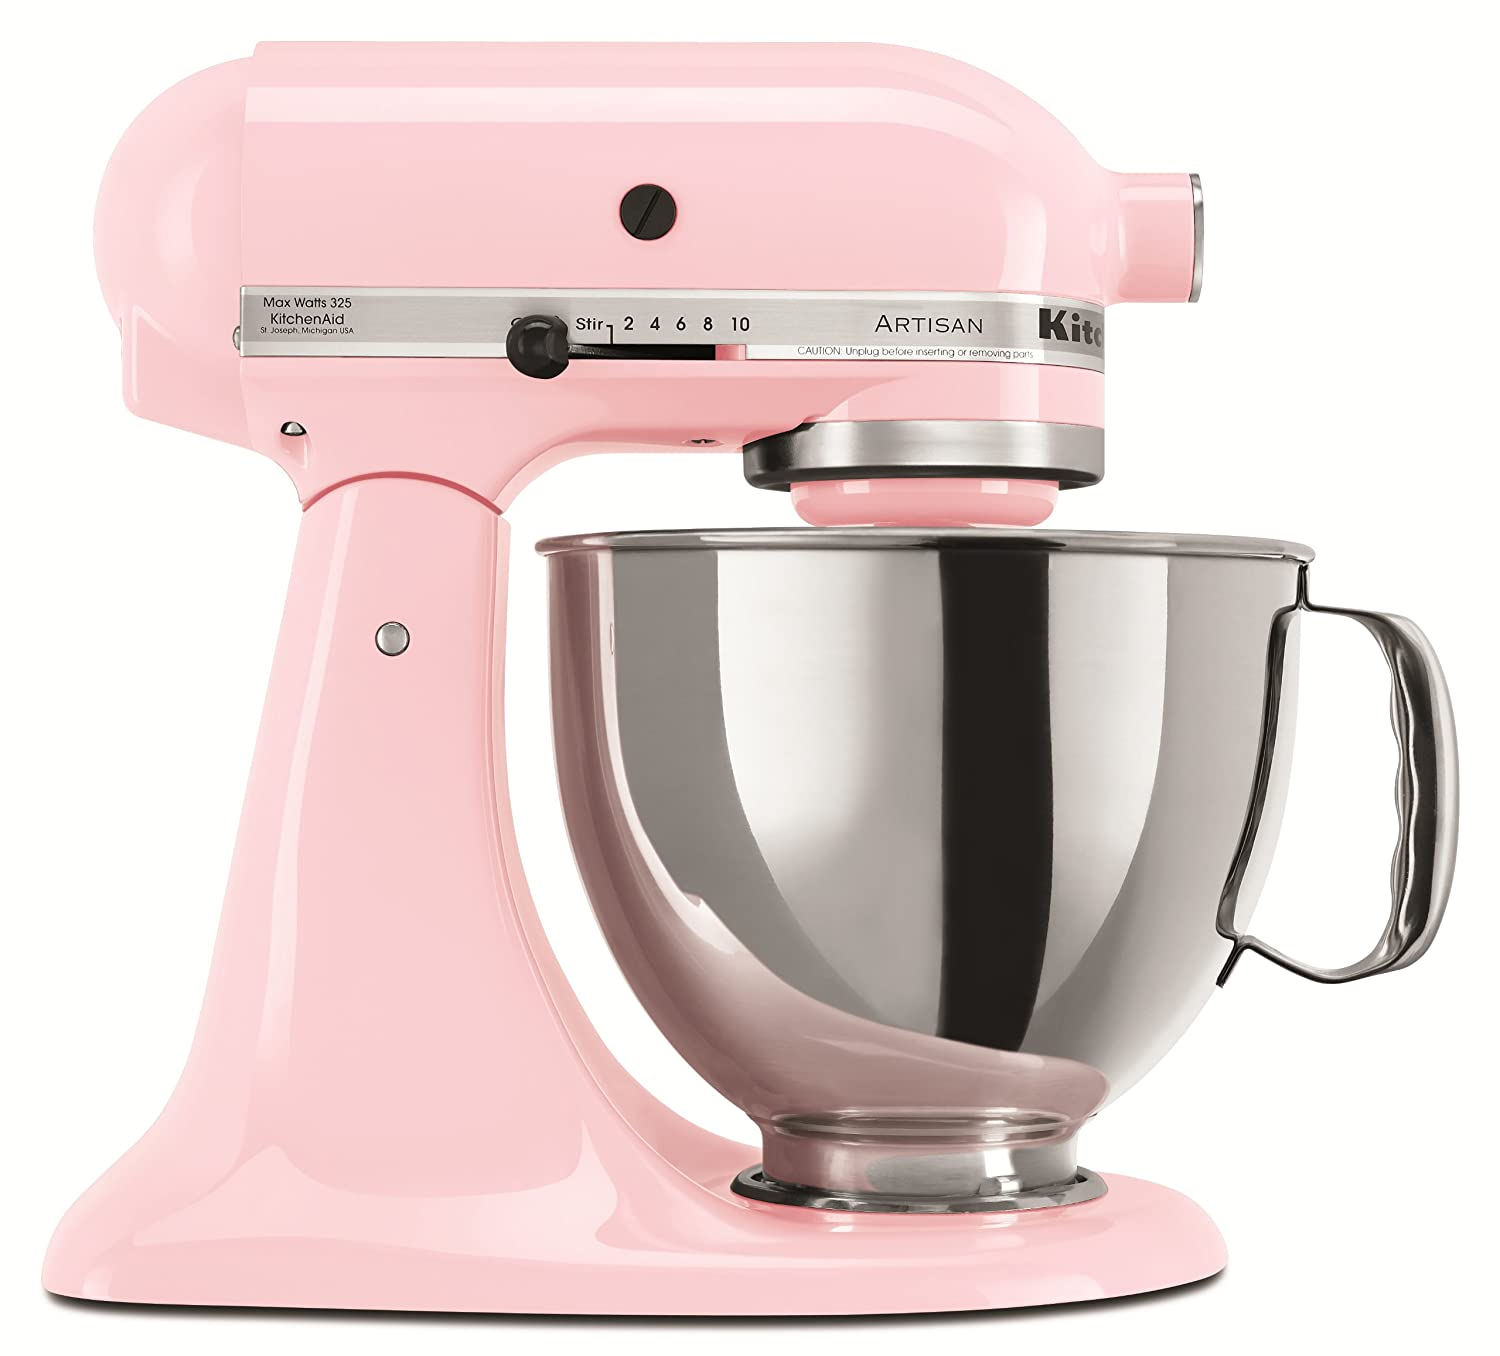 Amazon.com: KitchenAid KSM150PSPK Artisan Series 5-Qt. Stand Mixer ...